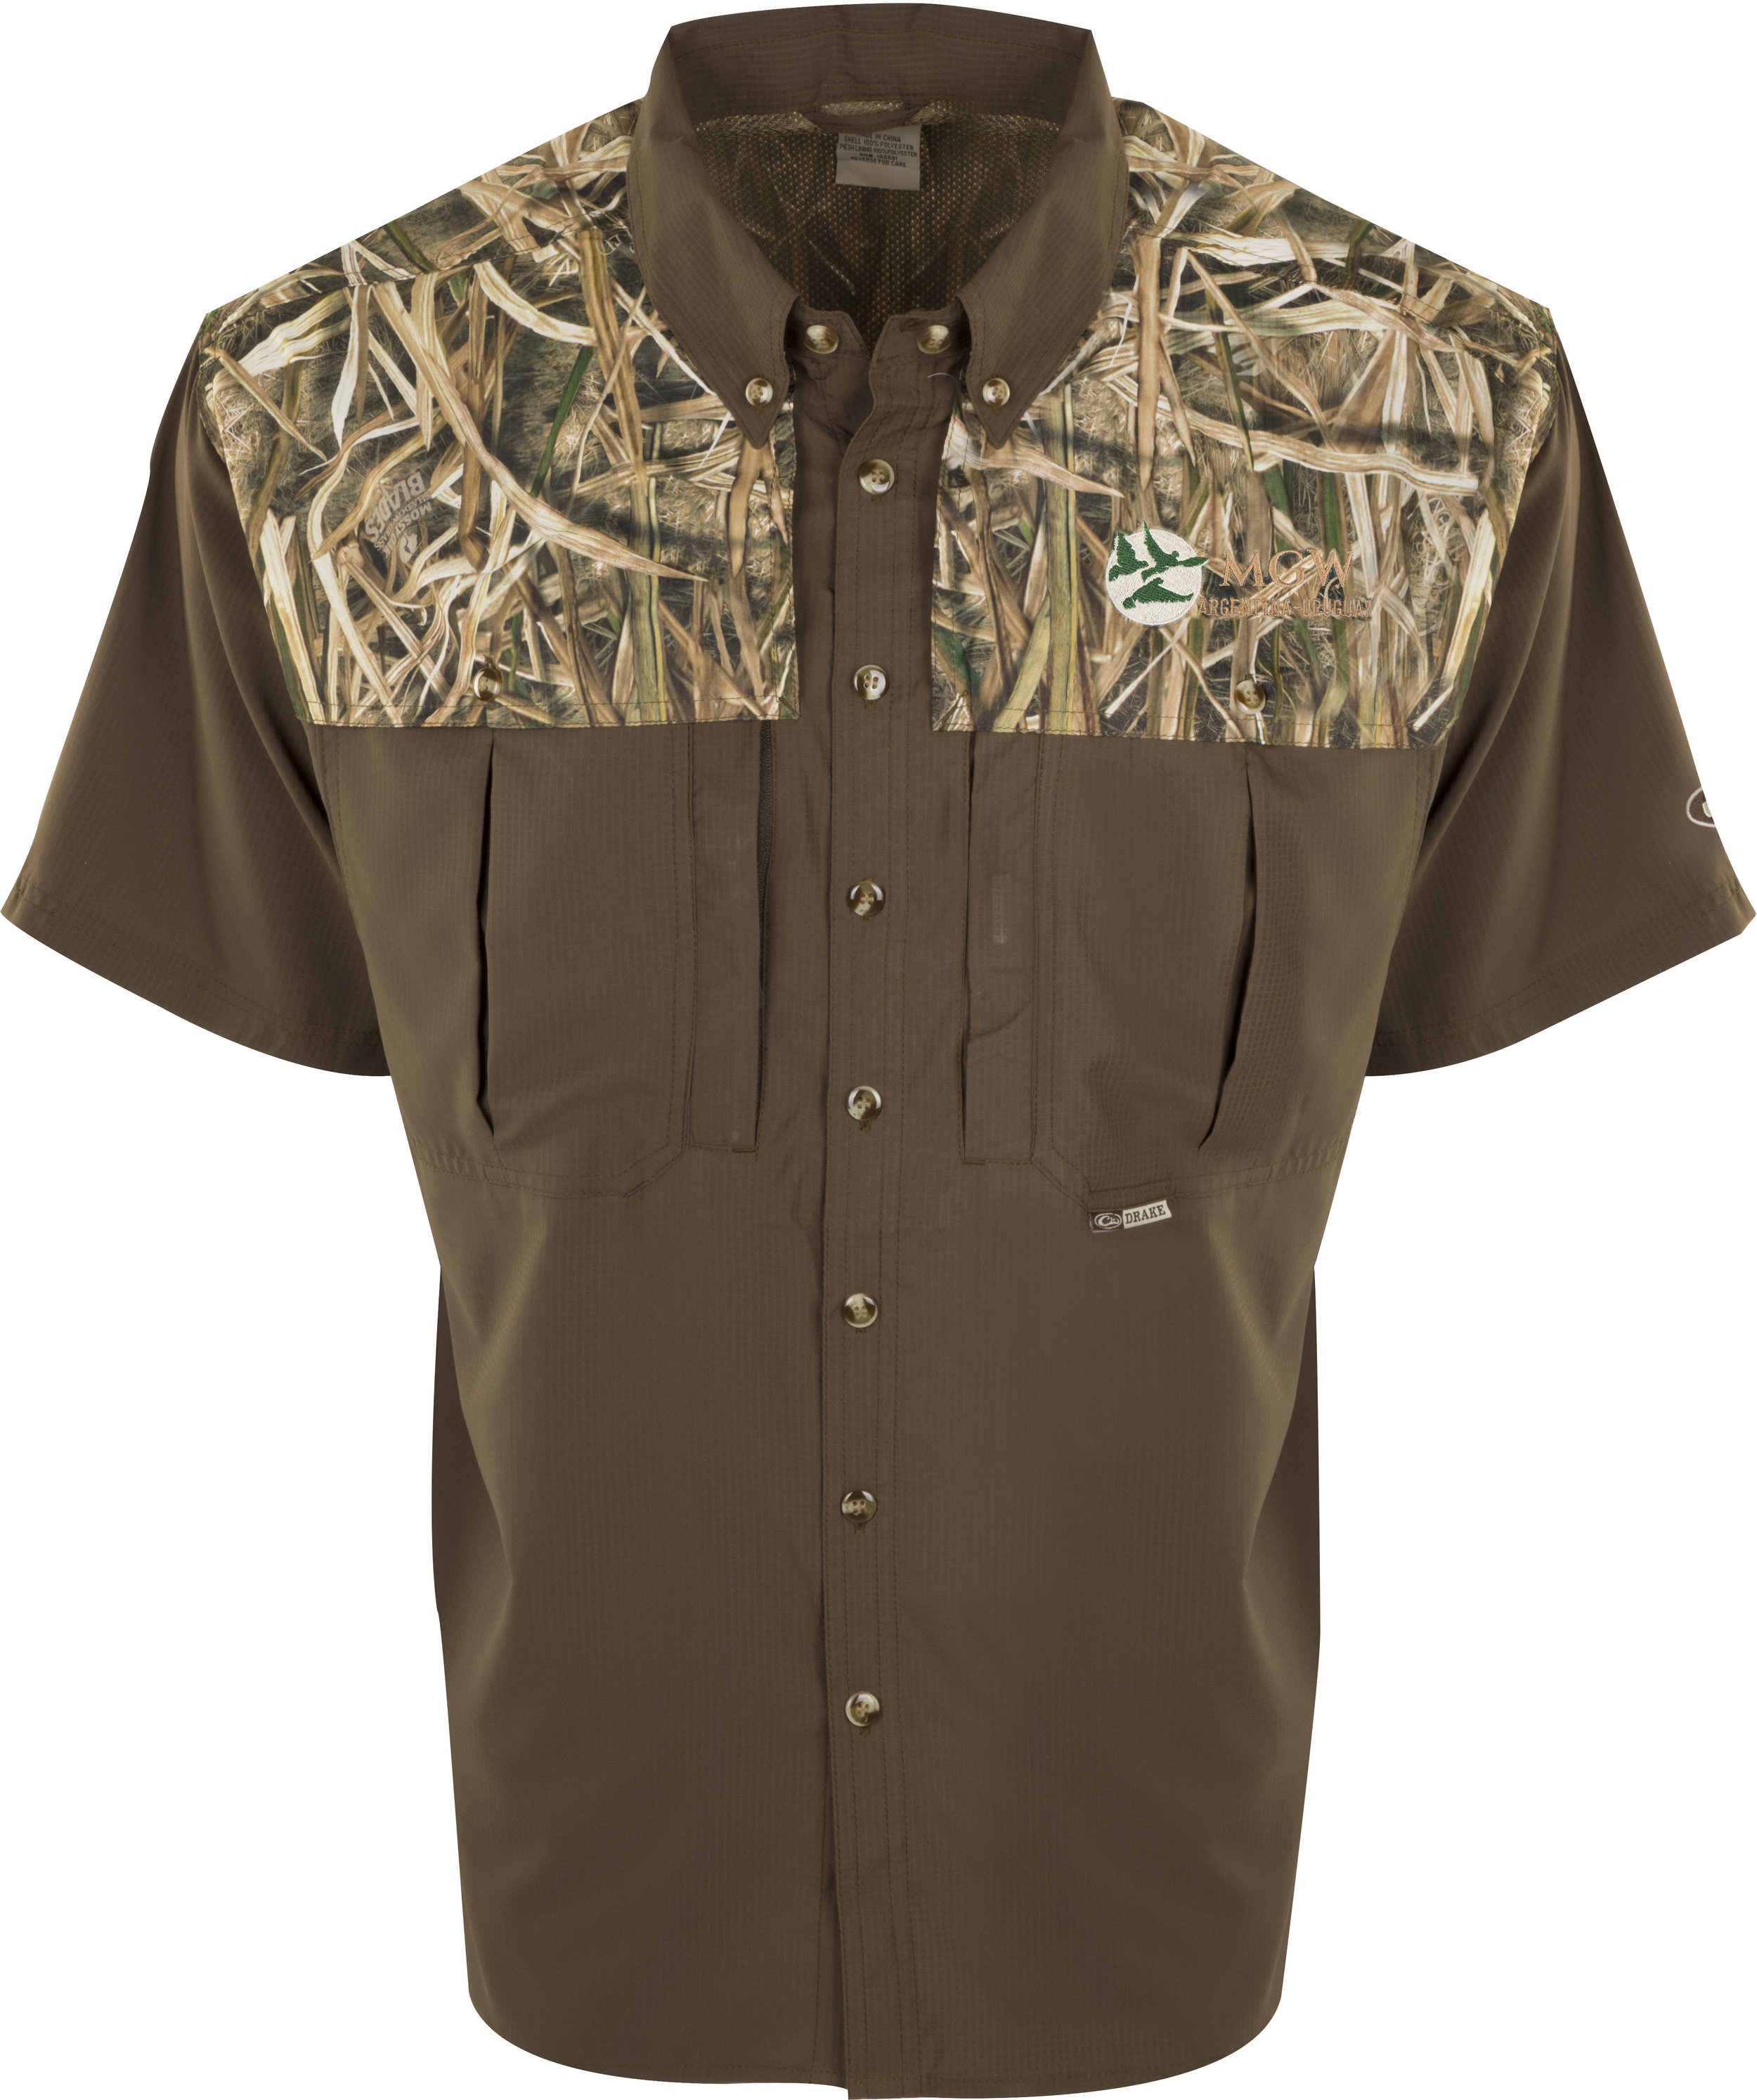 Drake Two-Tone Blades Camo Flyweight Wingshooter's Shirt S/S  - $80